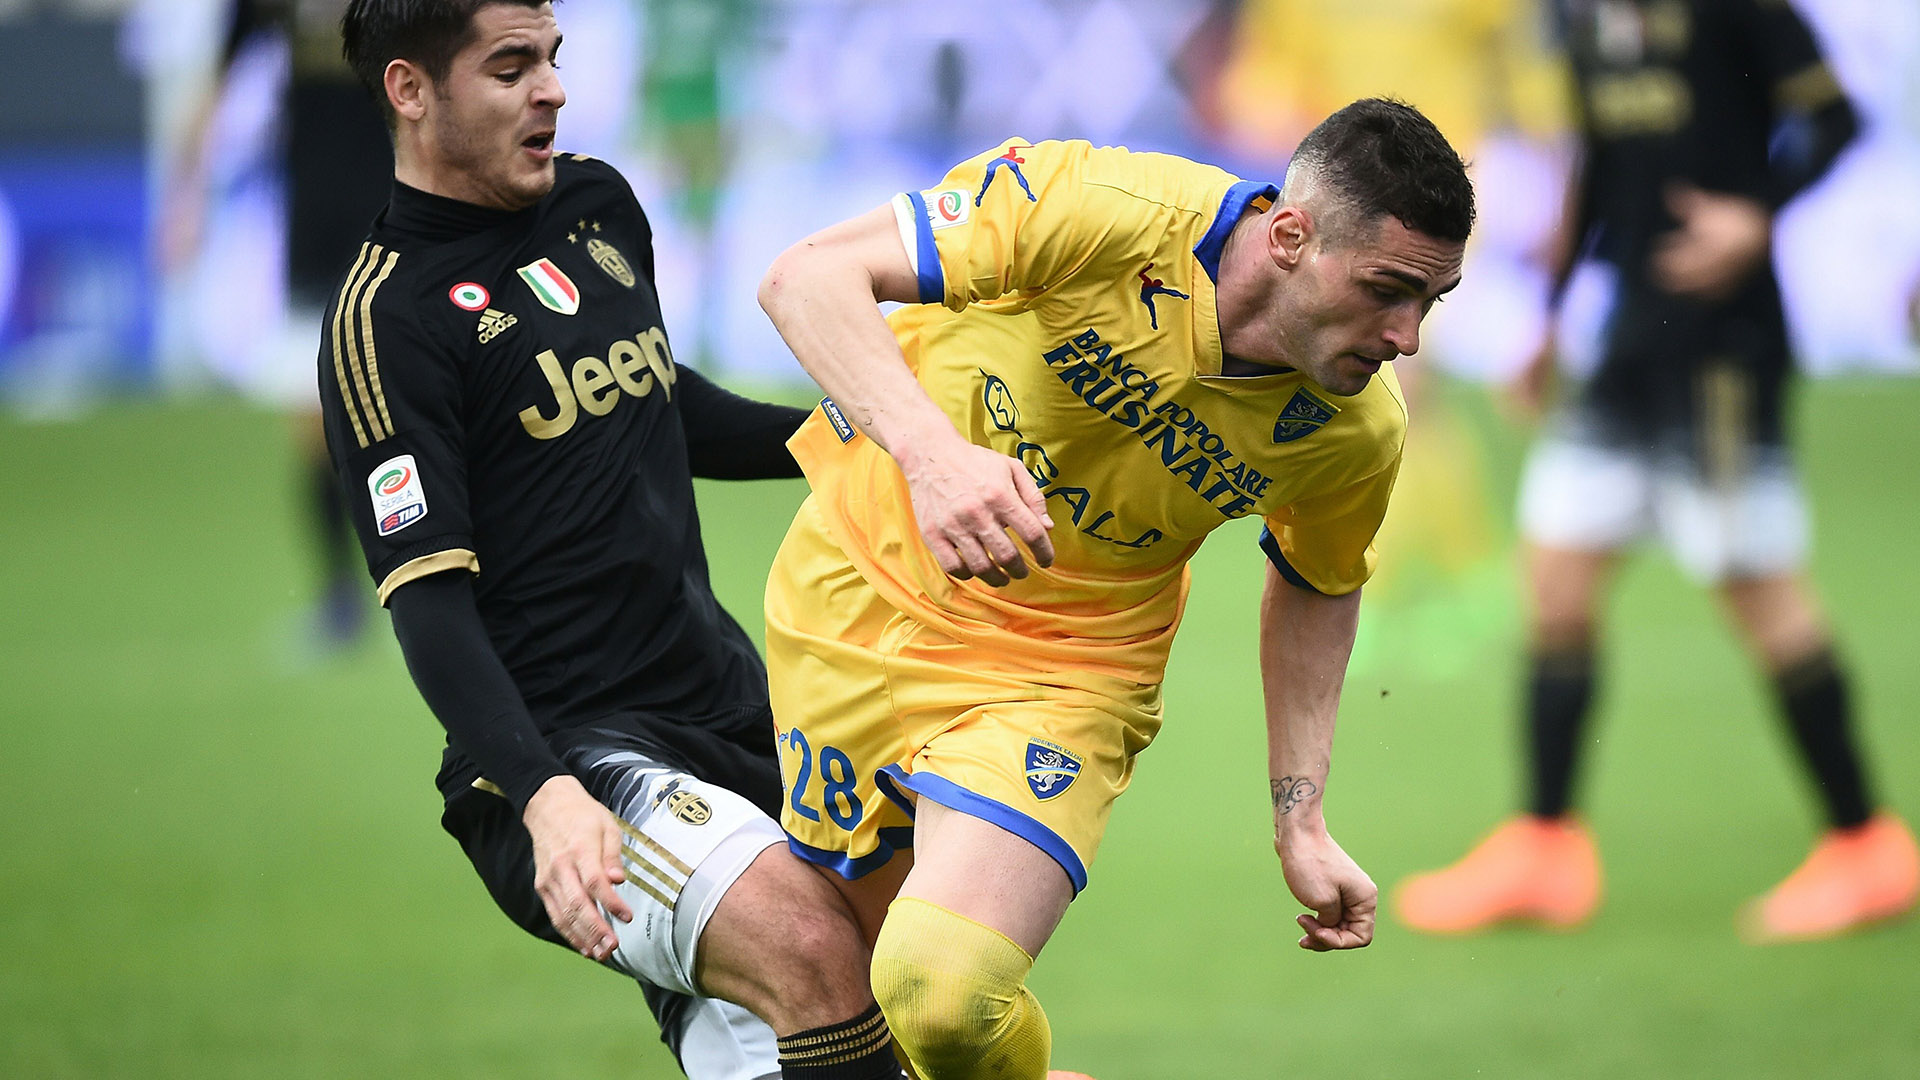 Video: Frosinone vs Juventus